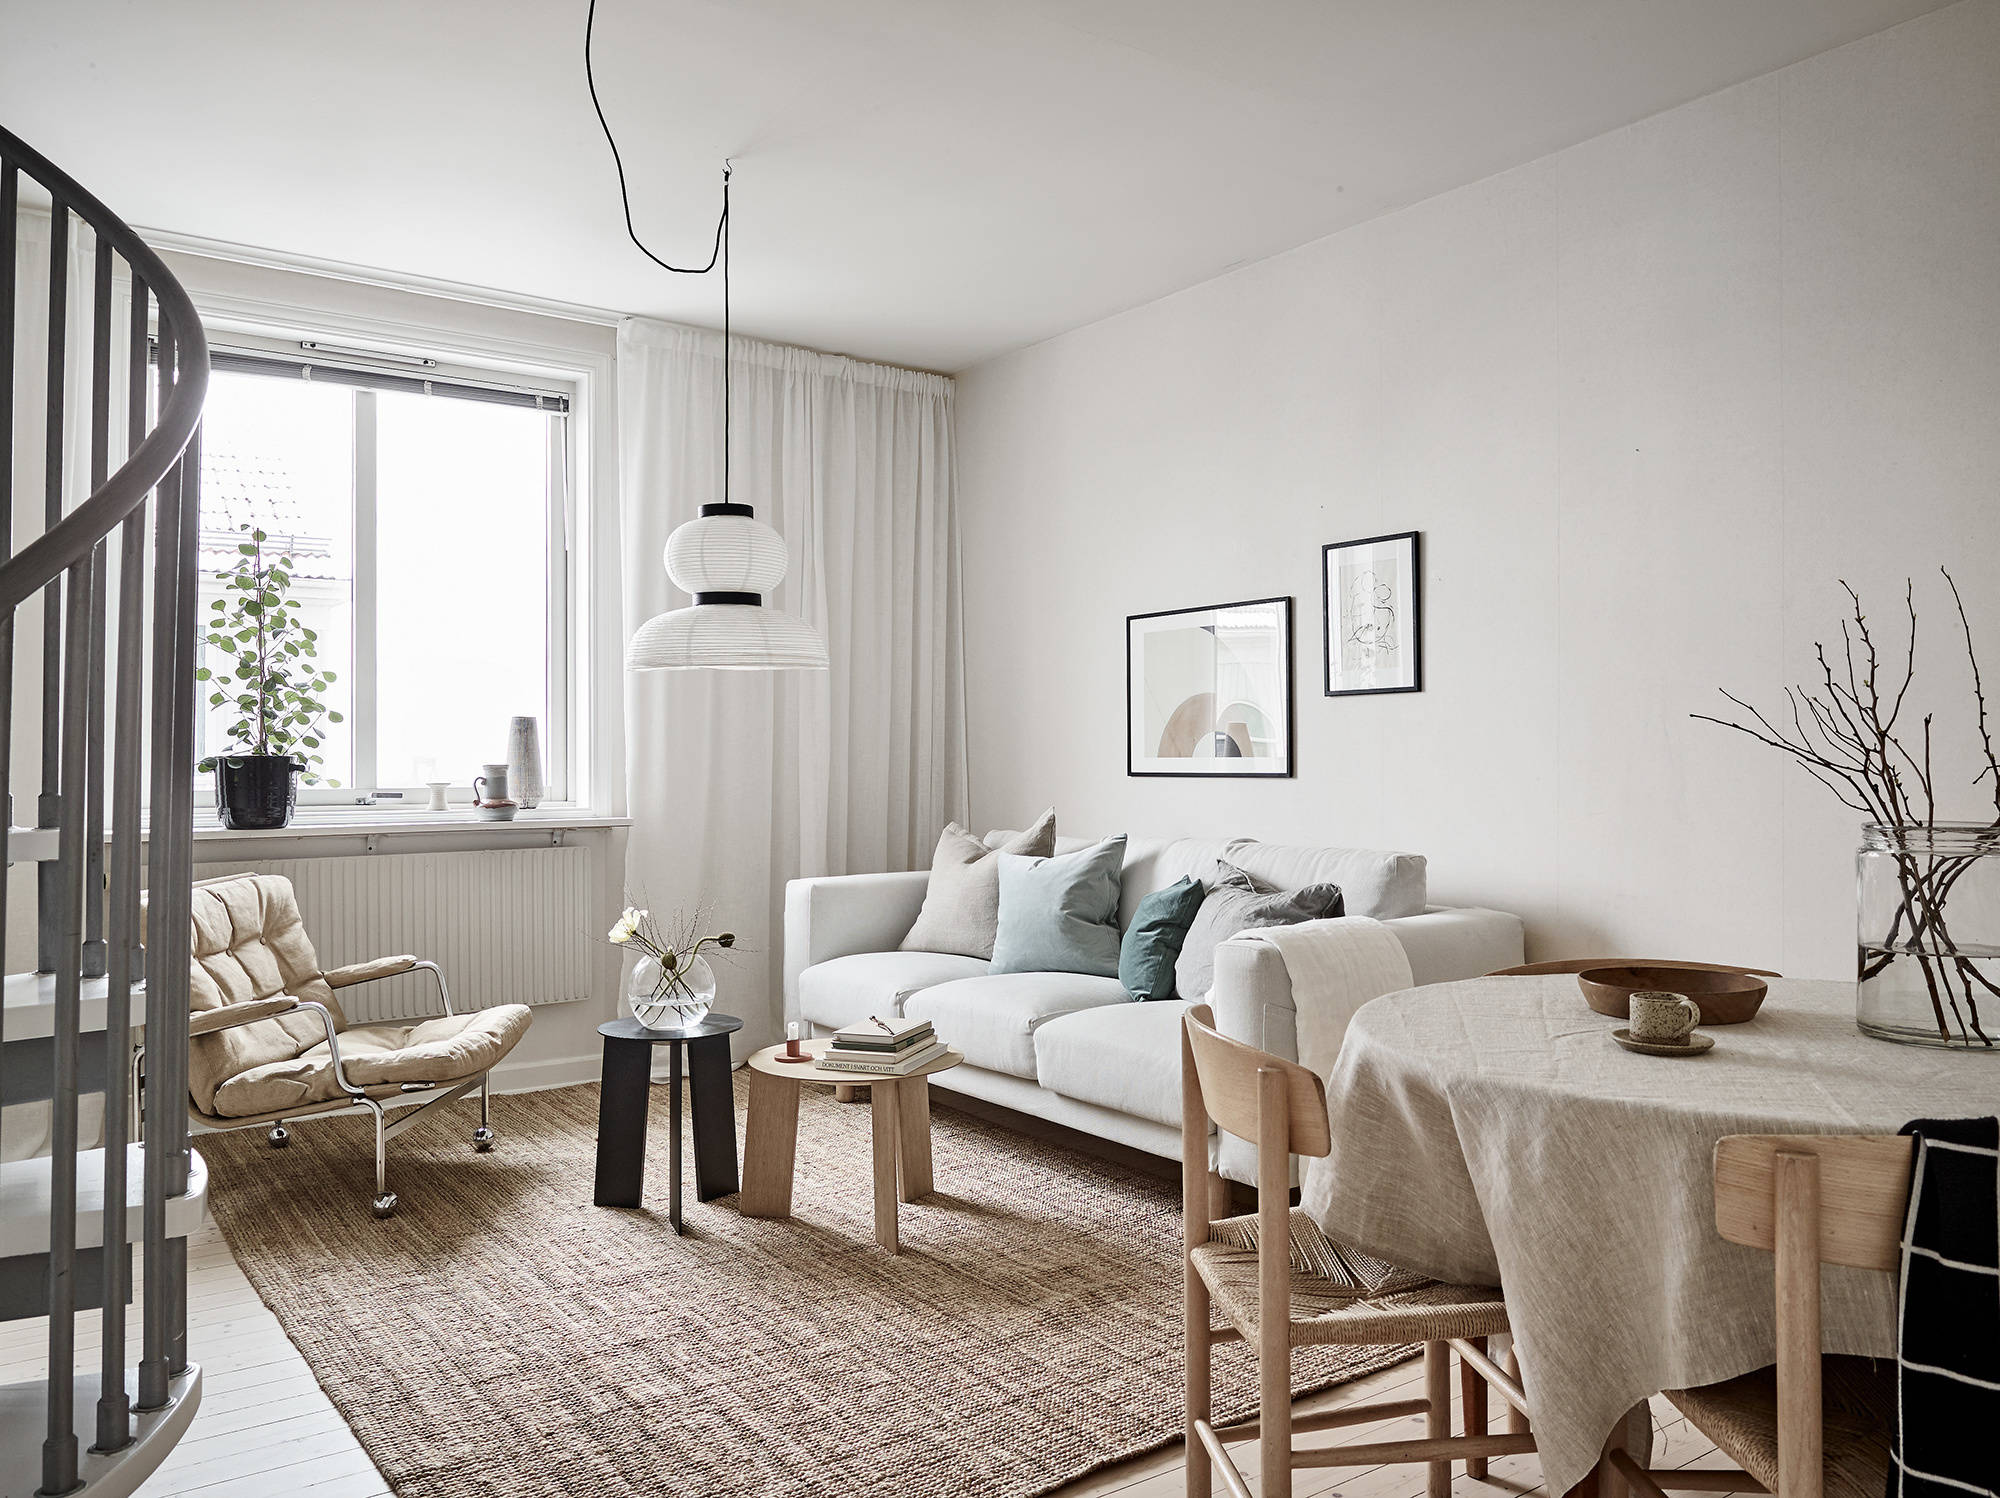 Get the look: Living room in a warm palette | COCO LAPINE DESIGN ...